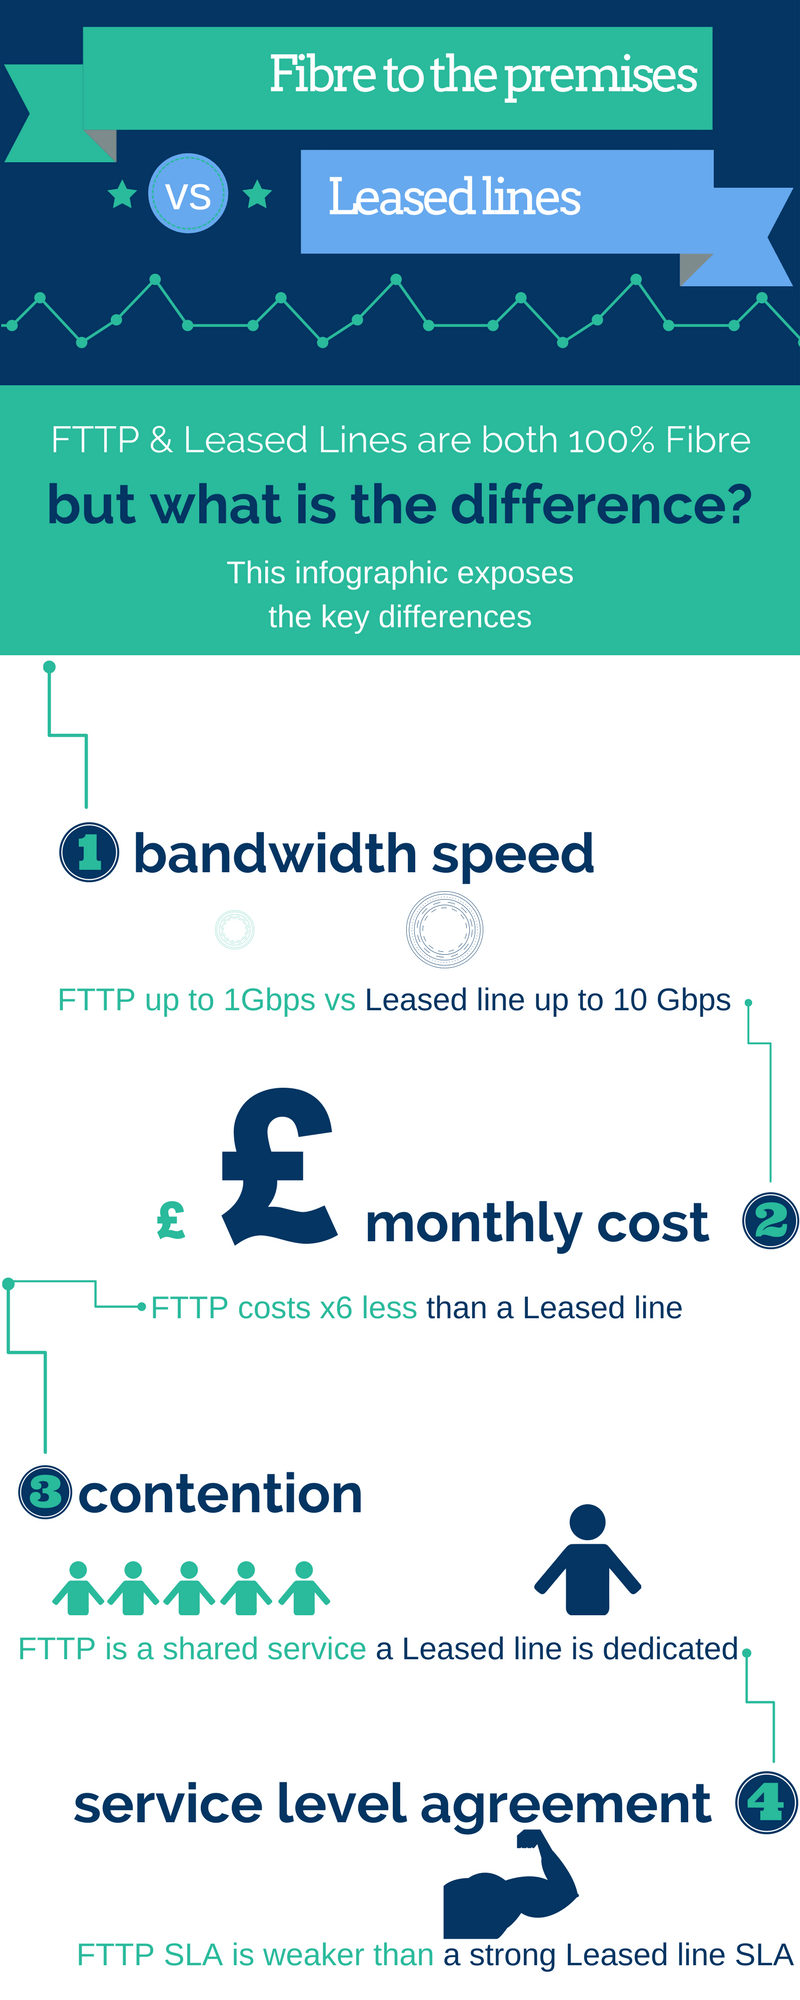 fttp vs leased line infographic